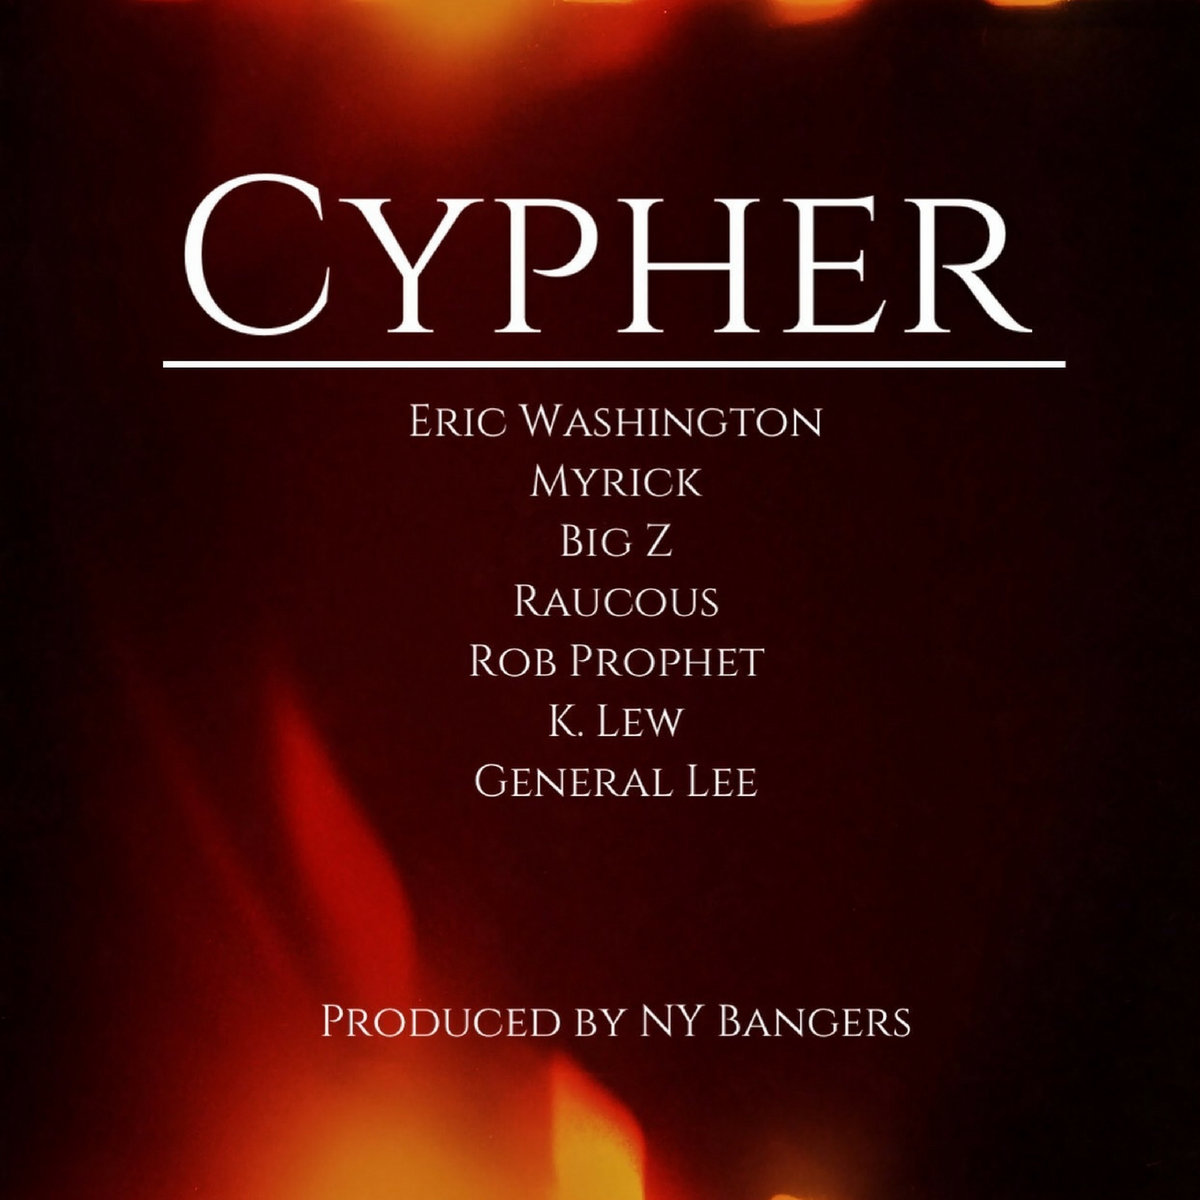 Cypher (feat. Myrick, Big Z, Raucous, Rob Prophet, K. Lew & General Lee) [Produced by NY Bangers] - Single by Eric Washington